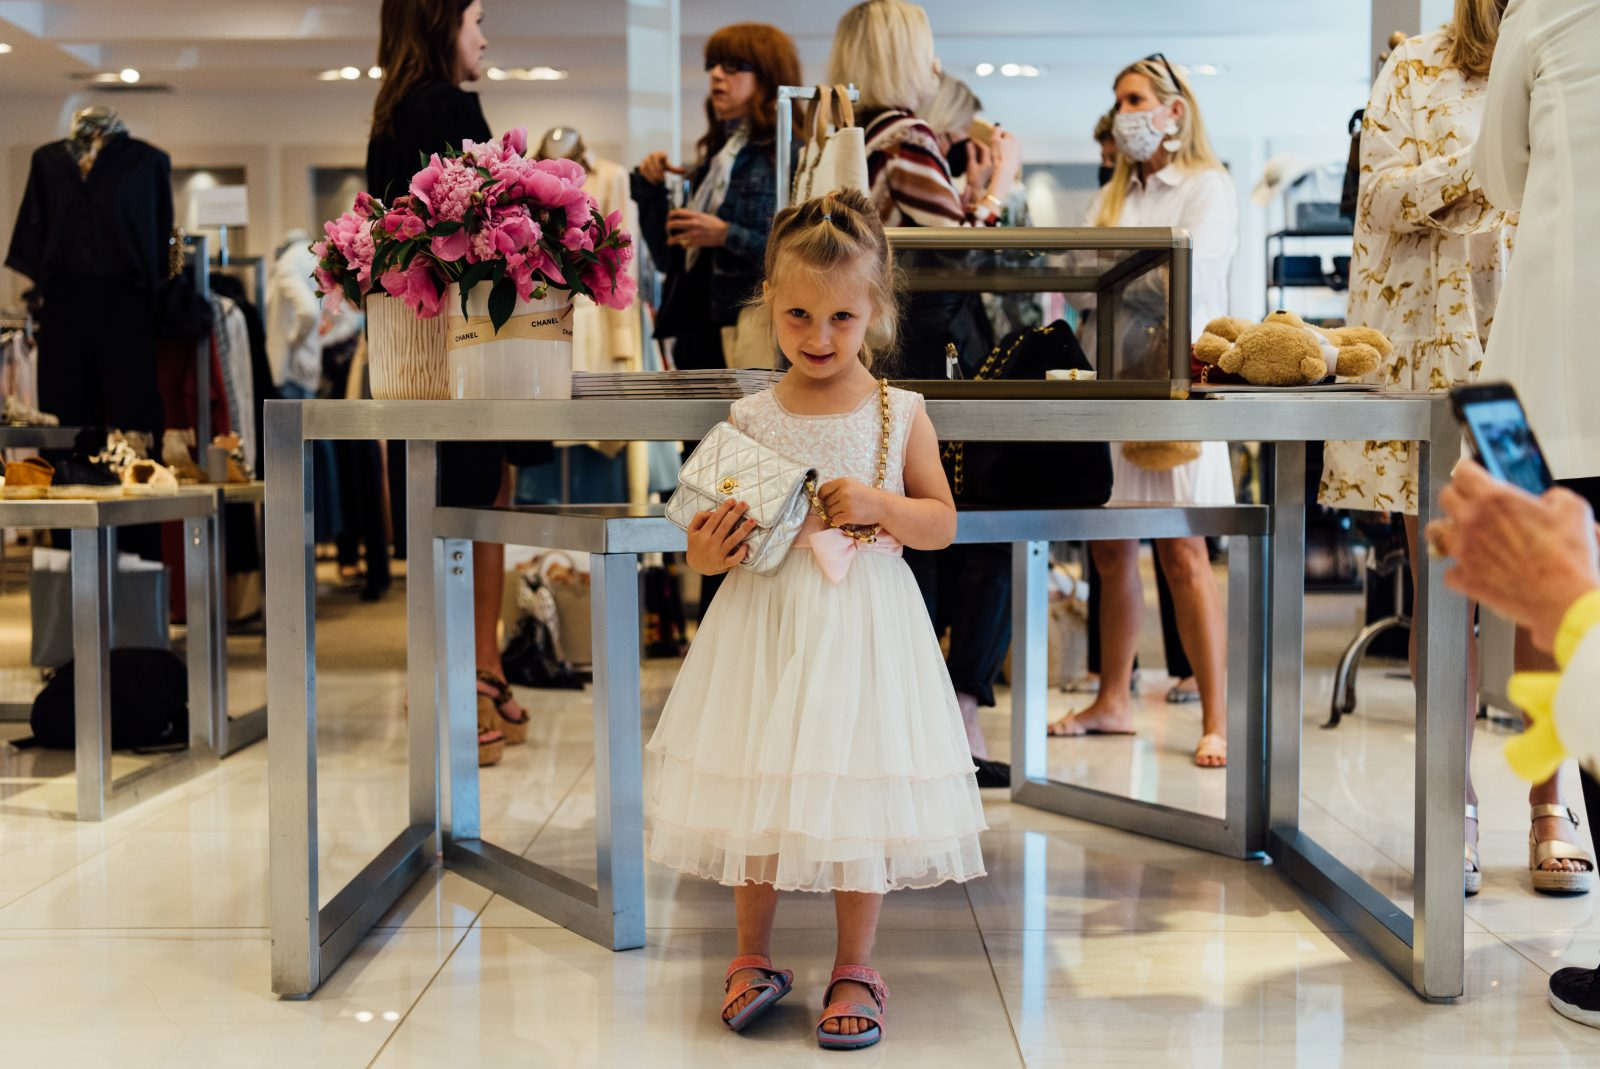 A young attendee at the Gus Mayer Vintage Trunk Show